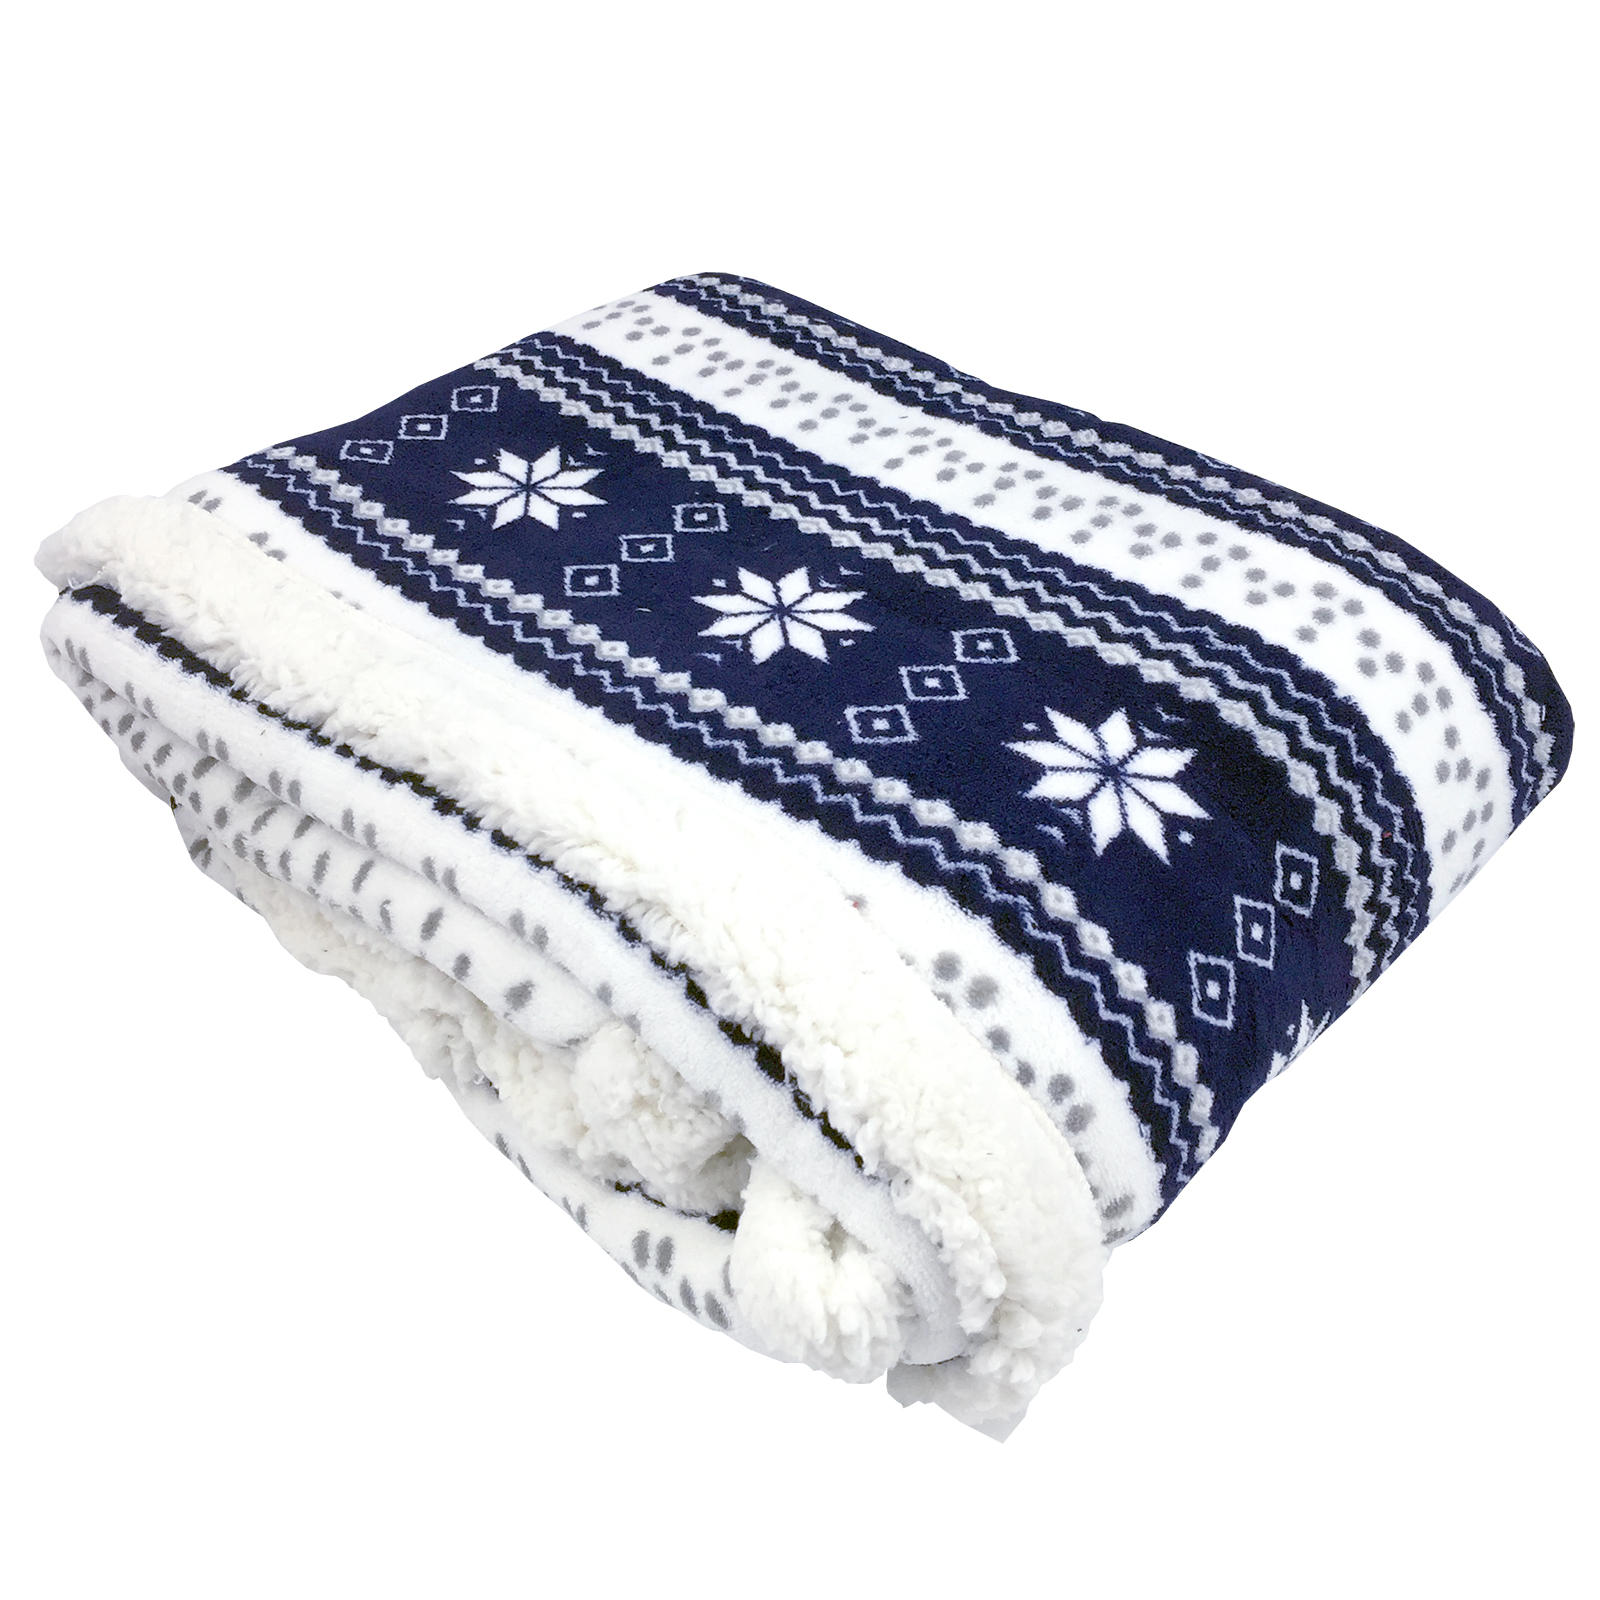 Find great deals on eBay for single bed fleece blanket. Shop with confidence.